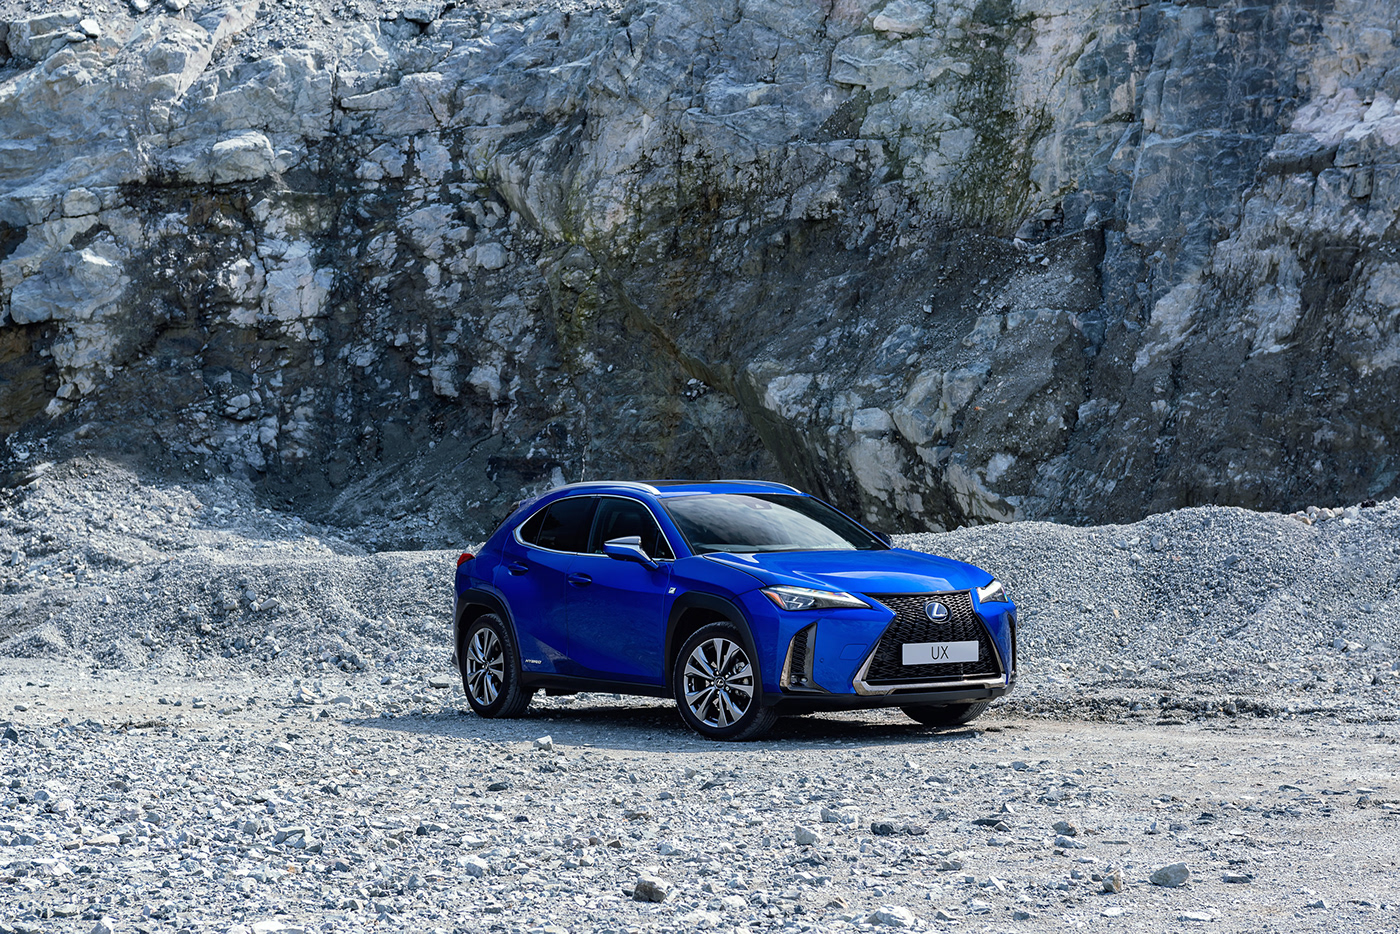 Lexus UX Hybrid car photography by Dean Wright Automotive. shot on moon like surface.